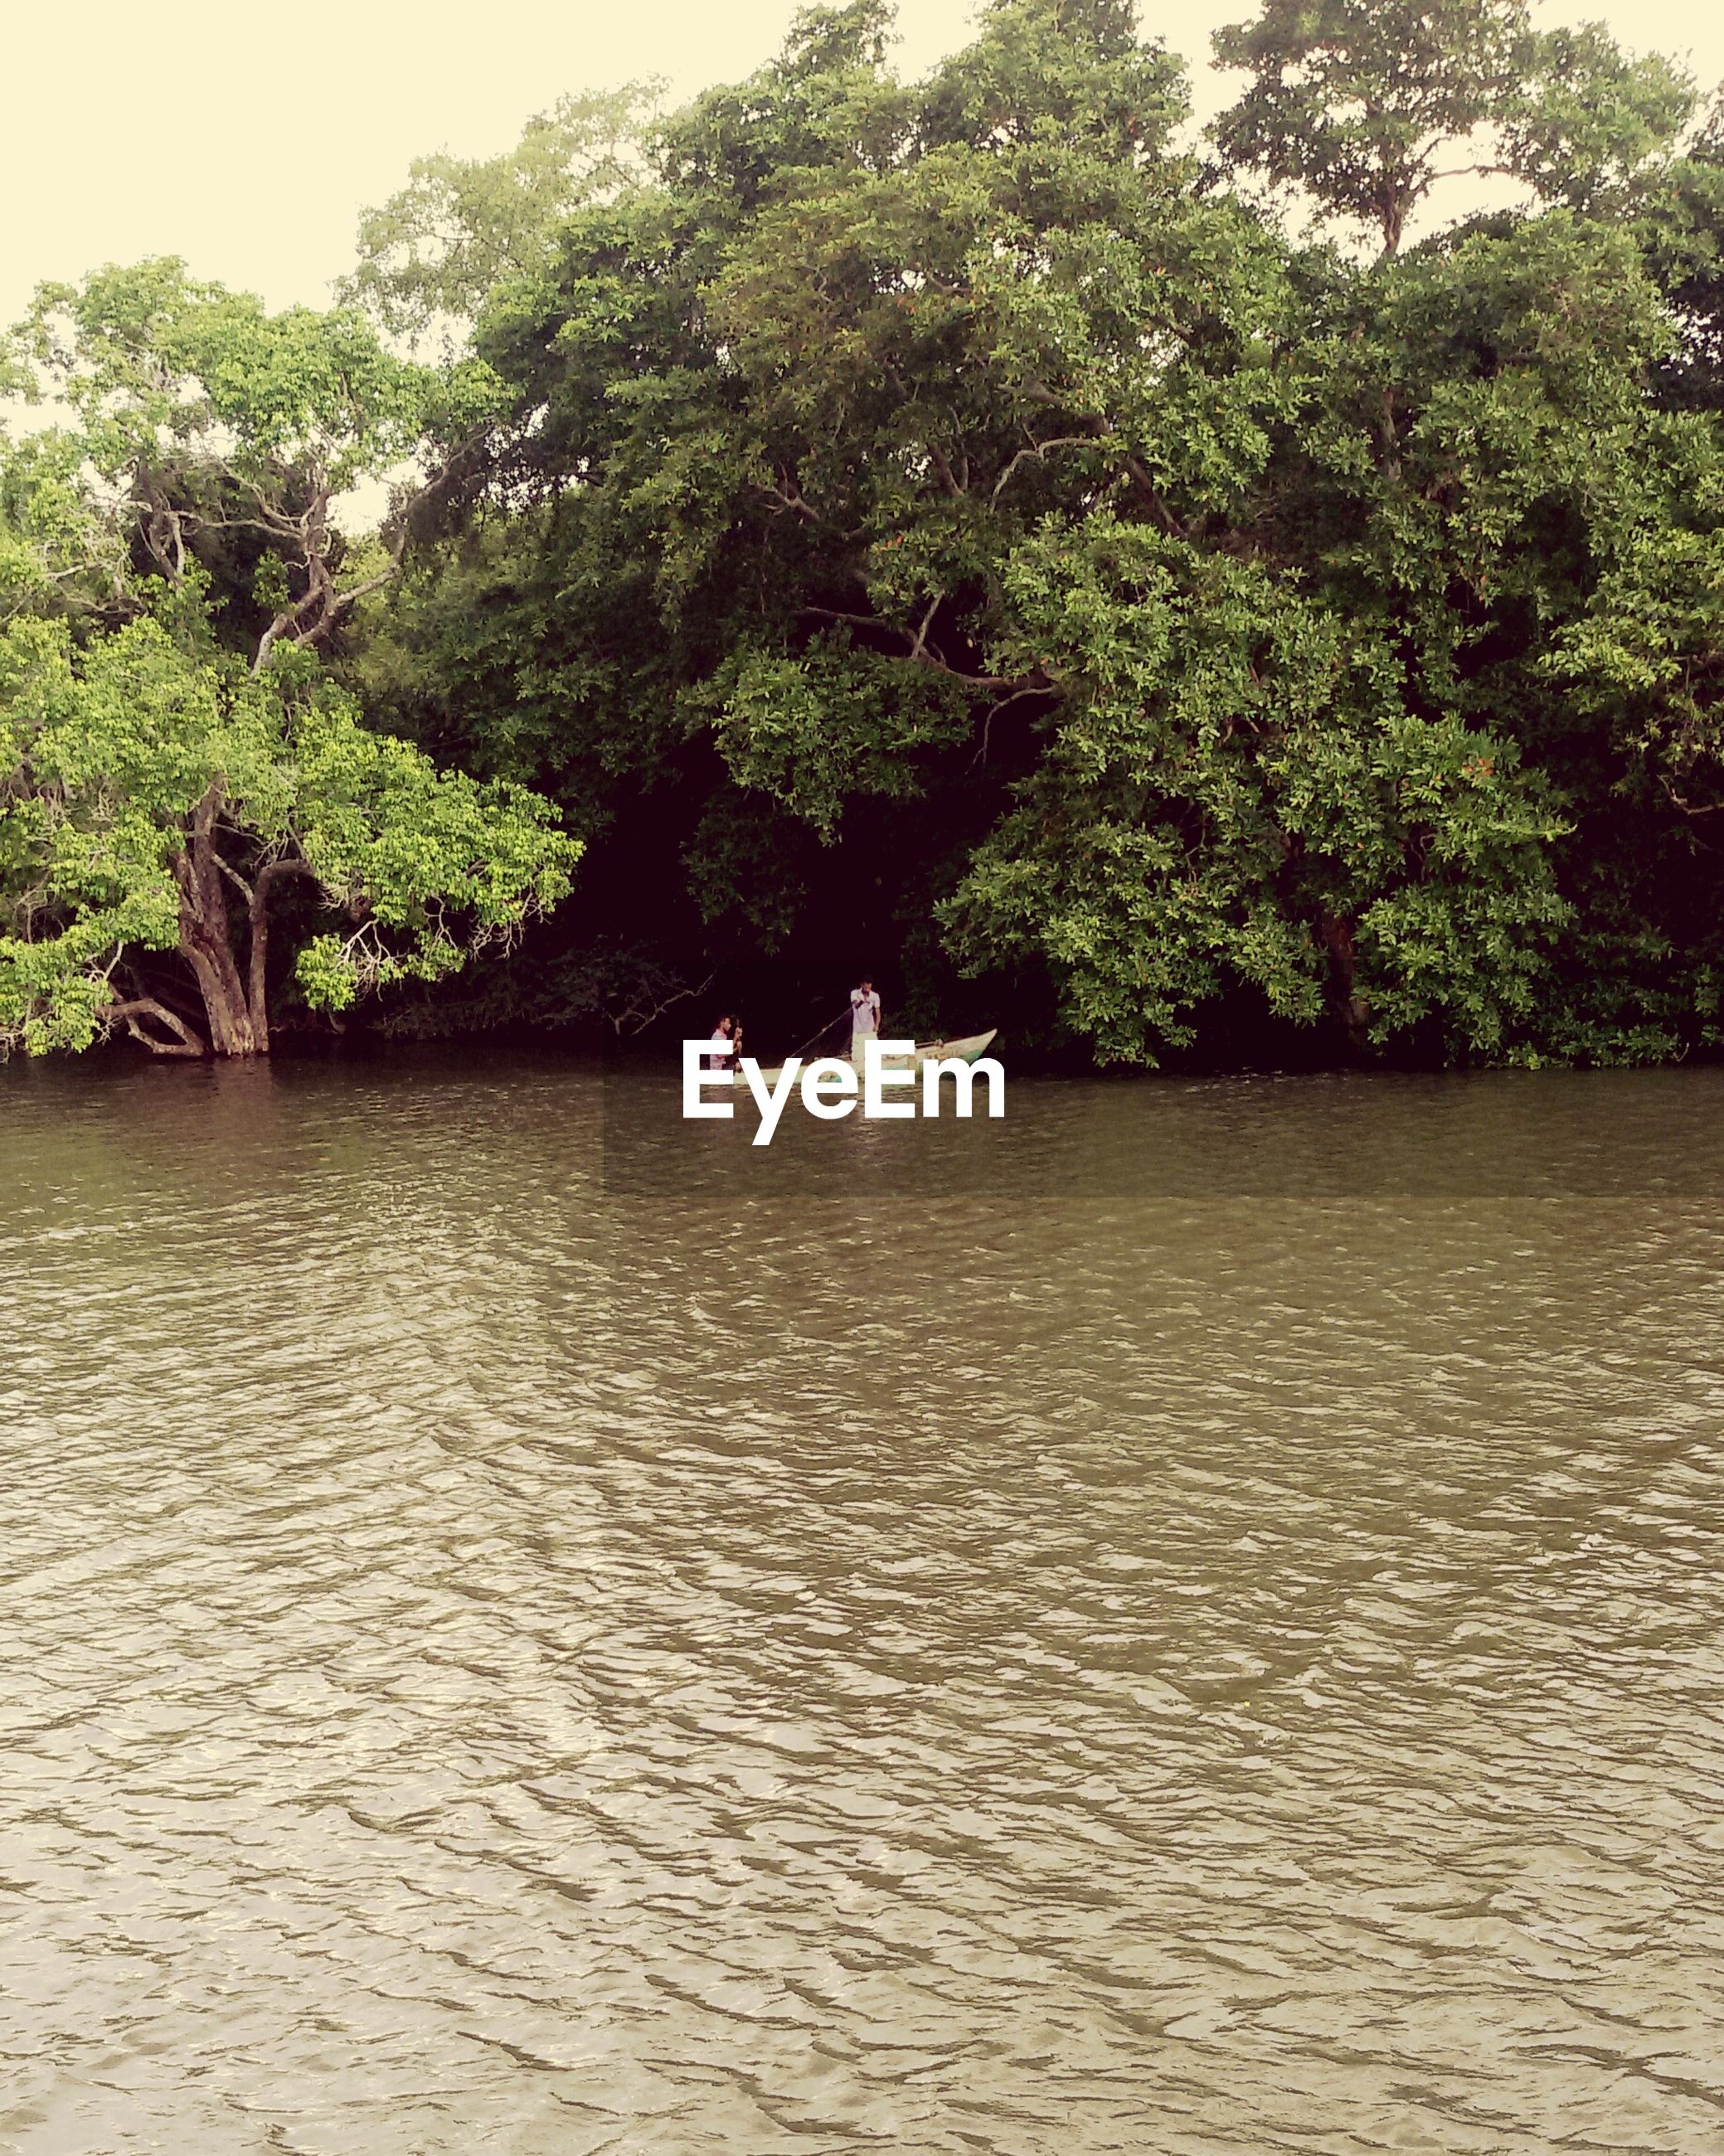 tree, water, waterfront, tranquility, tranquil scene, nature, growth, beauty in nature, scenics, green color, rippled, river, day, lake, idyllic, outdoors, lush foliage, nautical vessel, transportation, sunlight